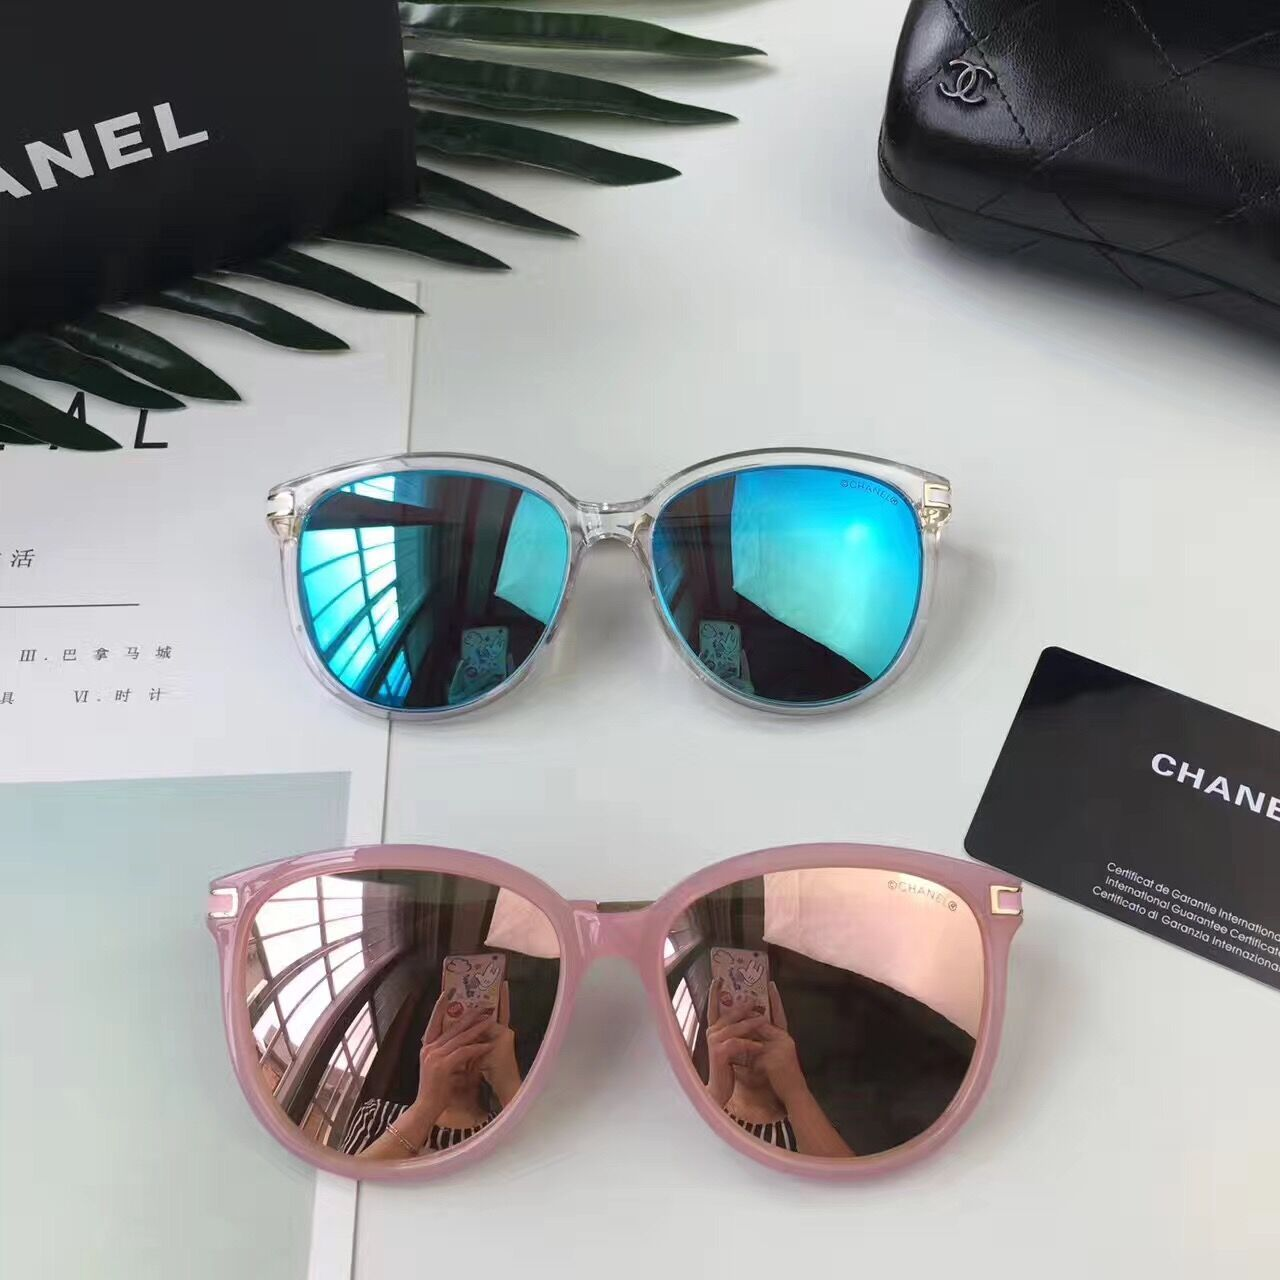 CHANEL 1816 29USD Whatsapp:+8613418595267 or +8618620002097 Email